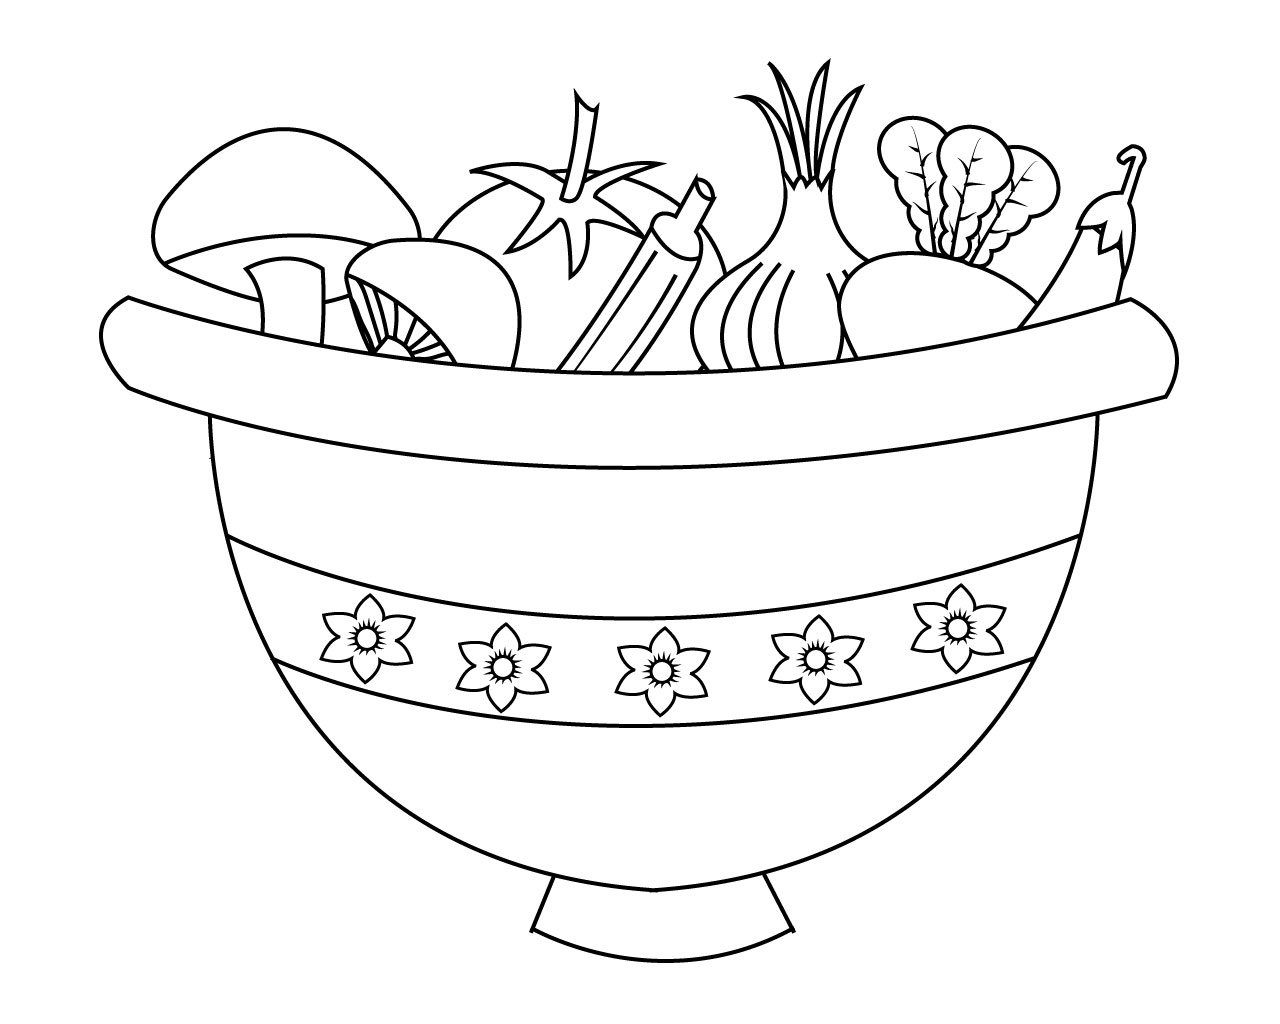 free printable coloring pages of vegetables free vegetables coloring page printable of coloring pages free vegetables